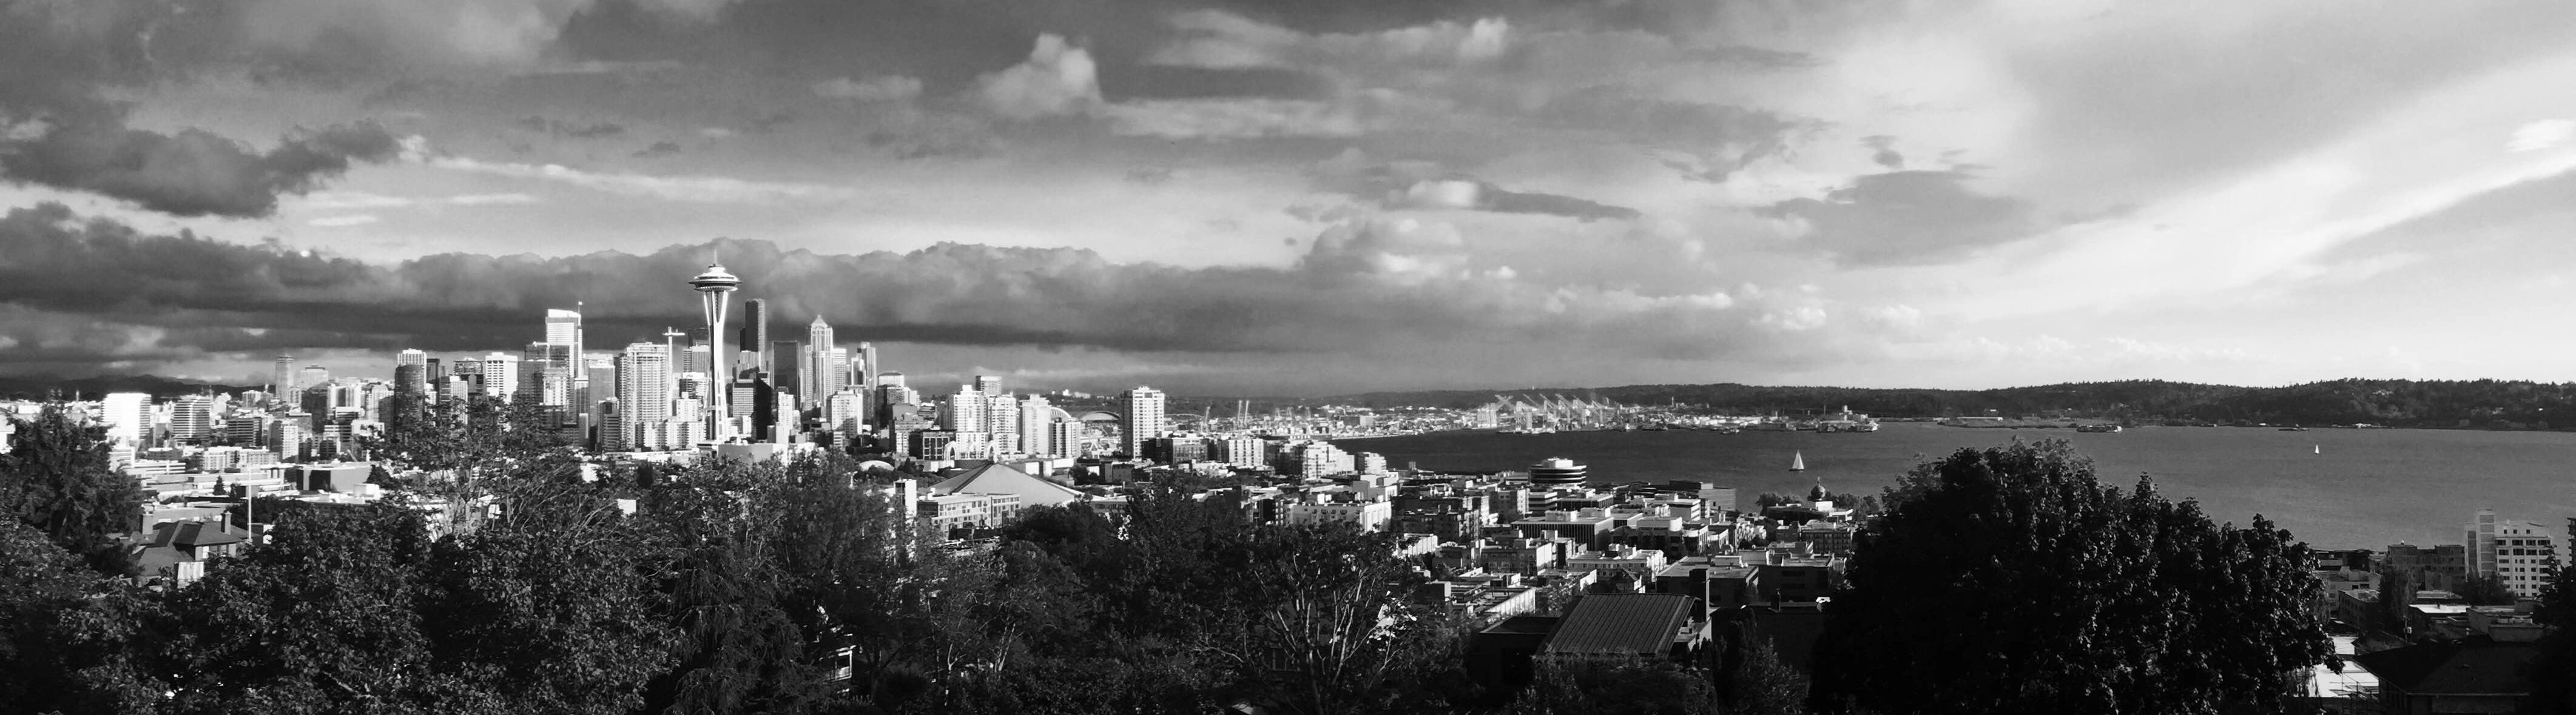 Week 3: Black & White City Skyline View Panorama